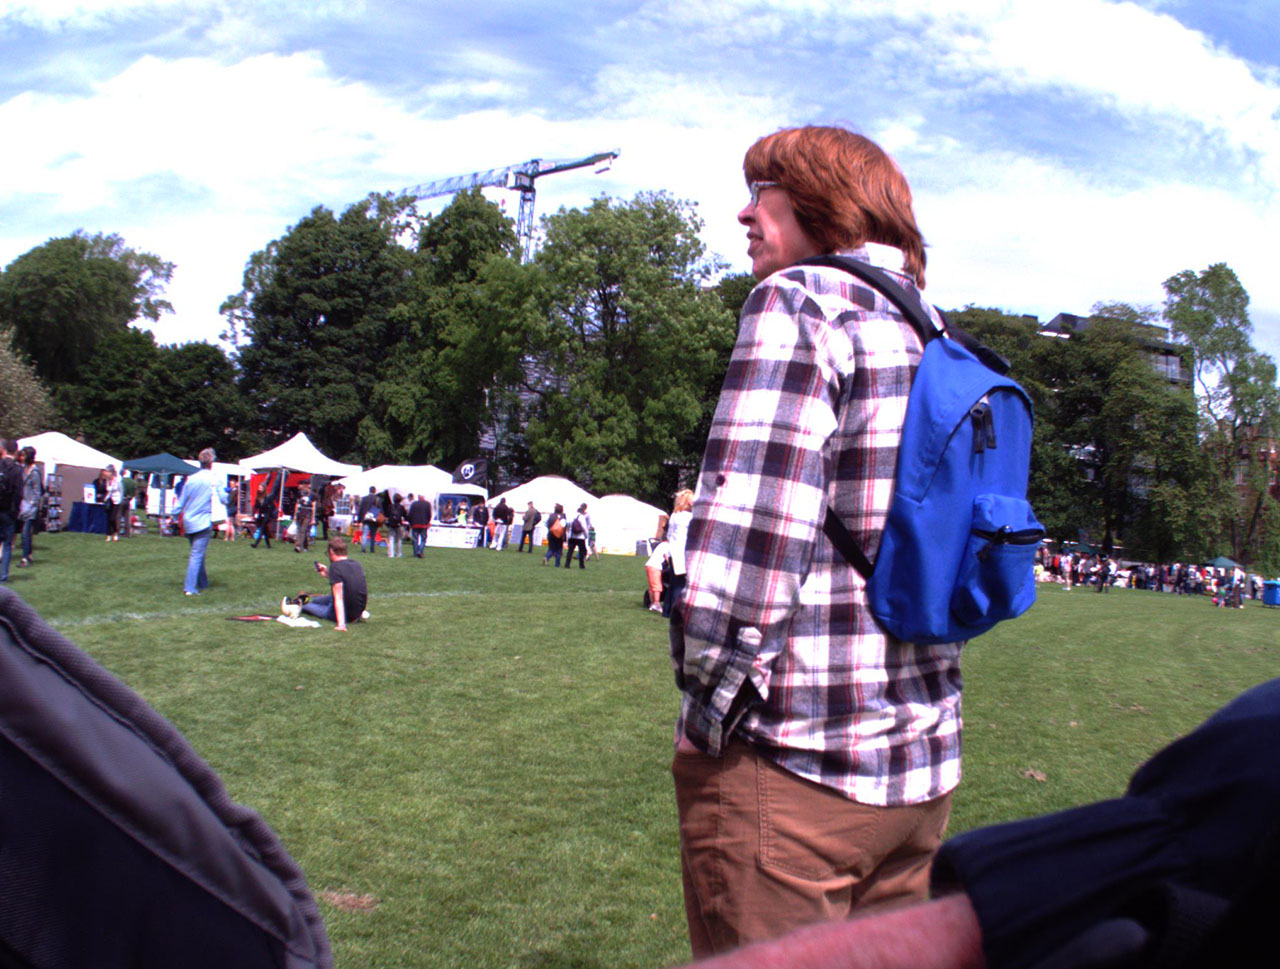 Autographer meadows2